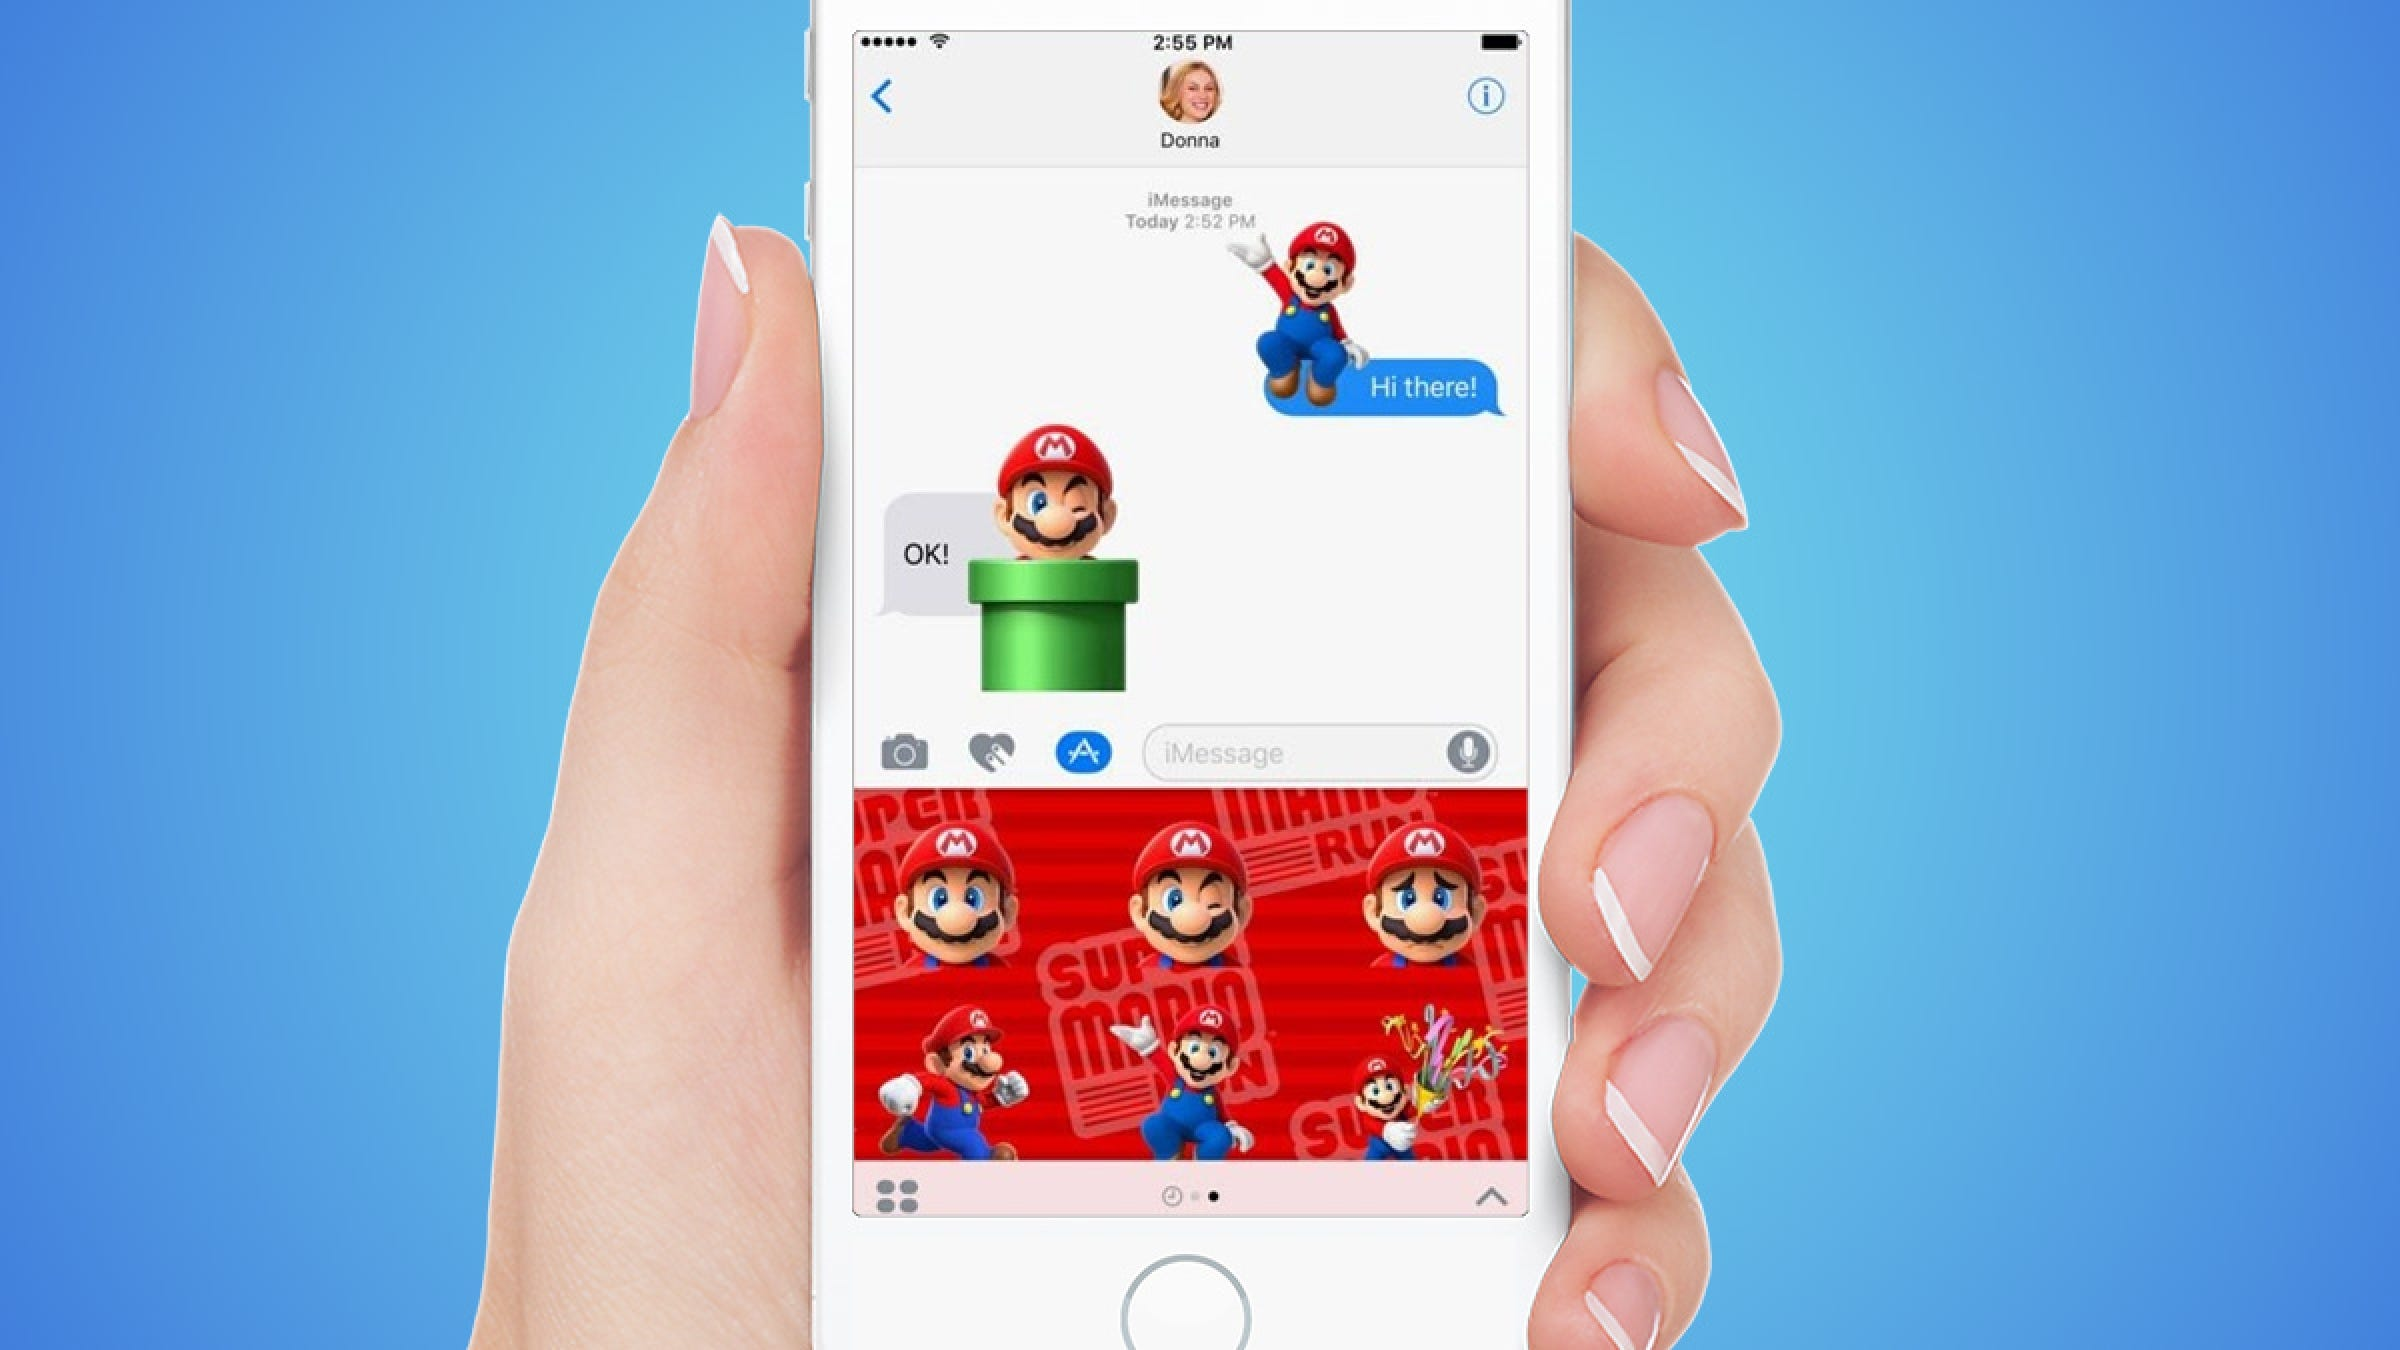 8 Unique Sticker Packs to Customize Your iMessage Experience